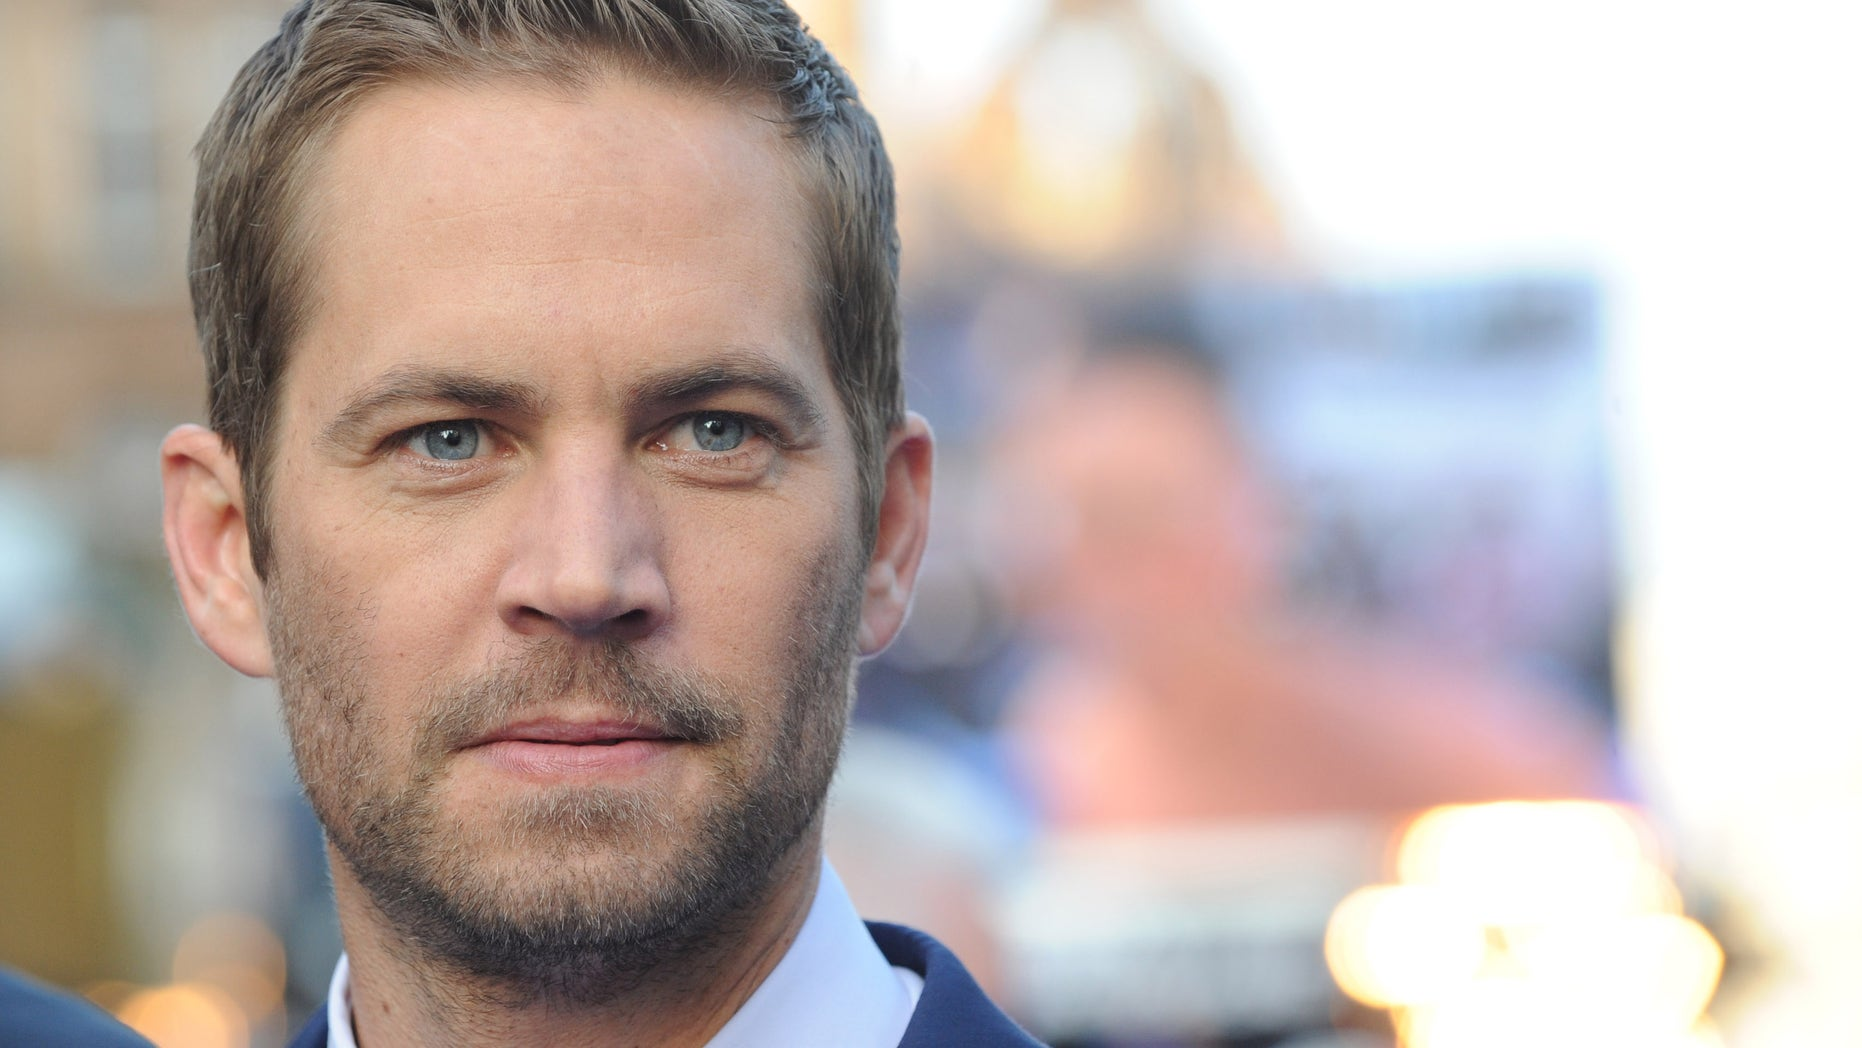 """LONDON, ENGLAND - MAY 07:  Actor Paul Walker attends the """"Fast & Furious 6"""" World Premiere at The Empire, Leicester Square on May 7, 2013 in London, England.  (Photo by Stuart C. Wilson/Getty Images for Universal Pictures)"""